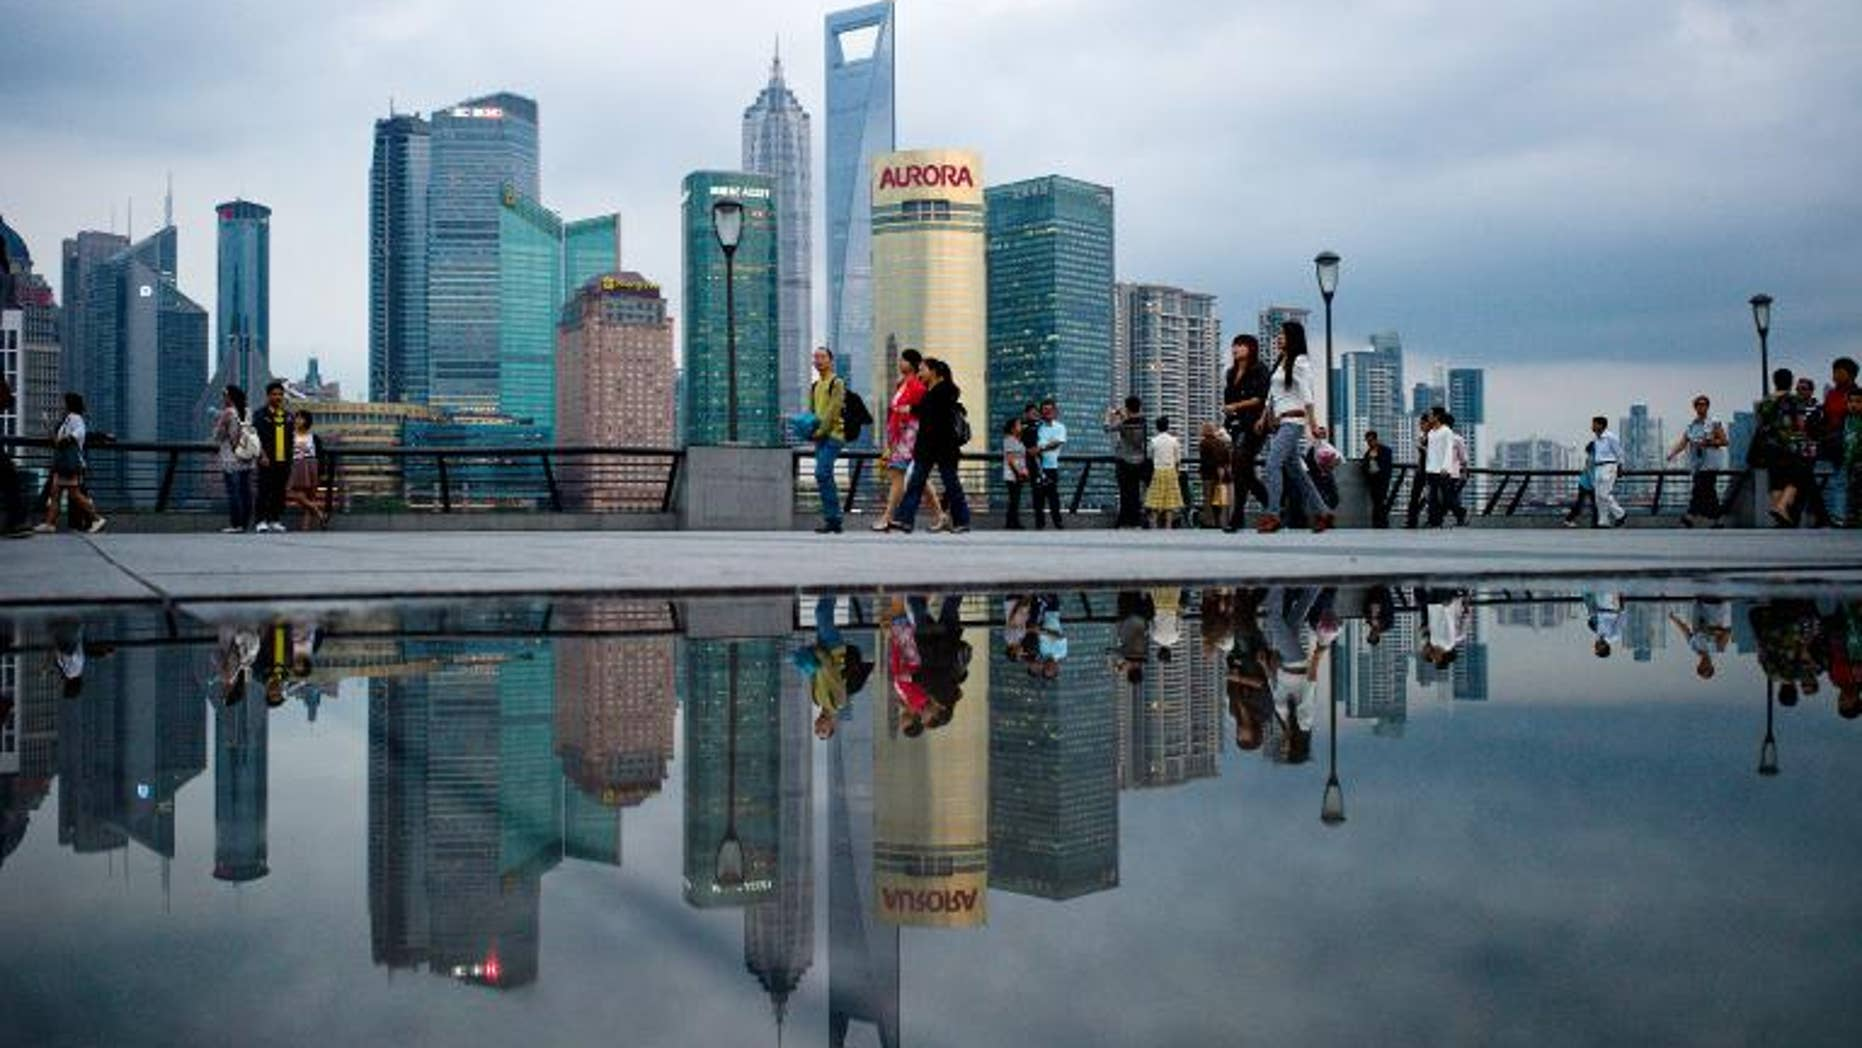 Pedestrians walk past the skyline of the city's financial district in Shanghai on October 8, 2010.